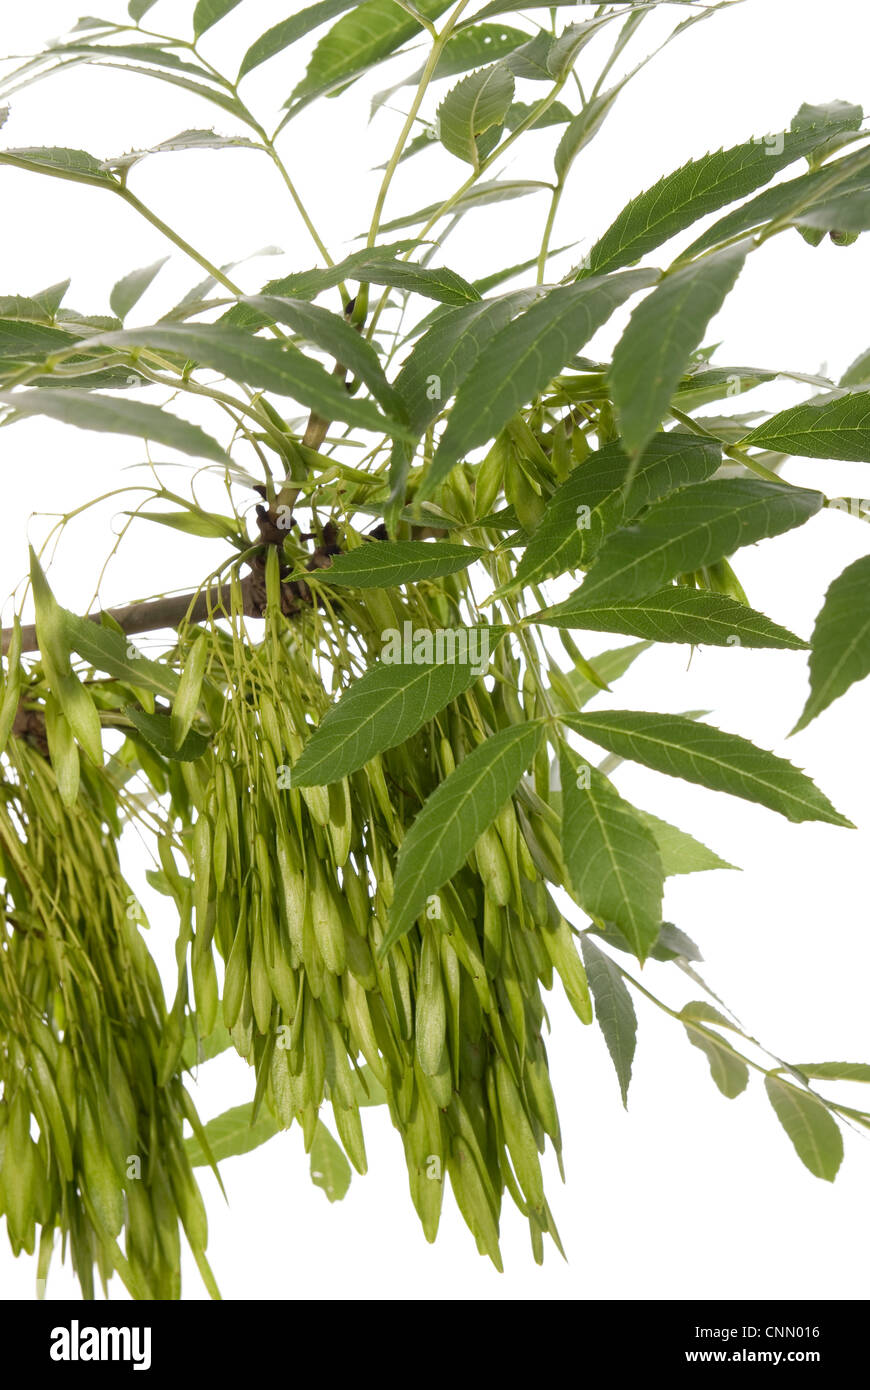 branch of the ash tree with fruit on white backgroud - Stock Image